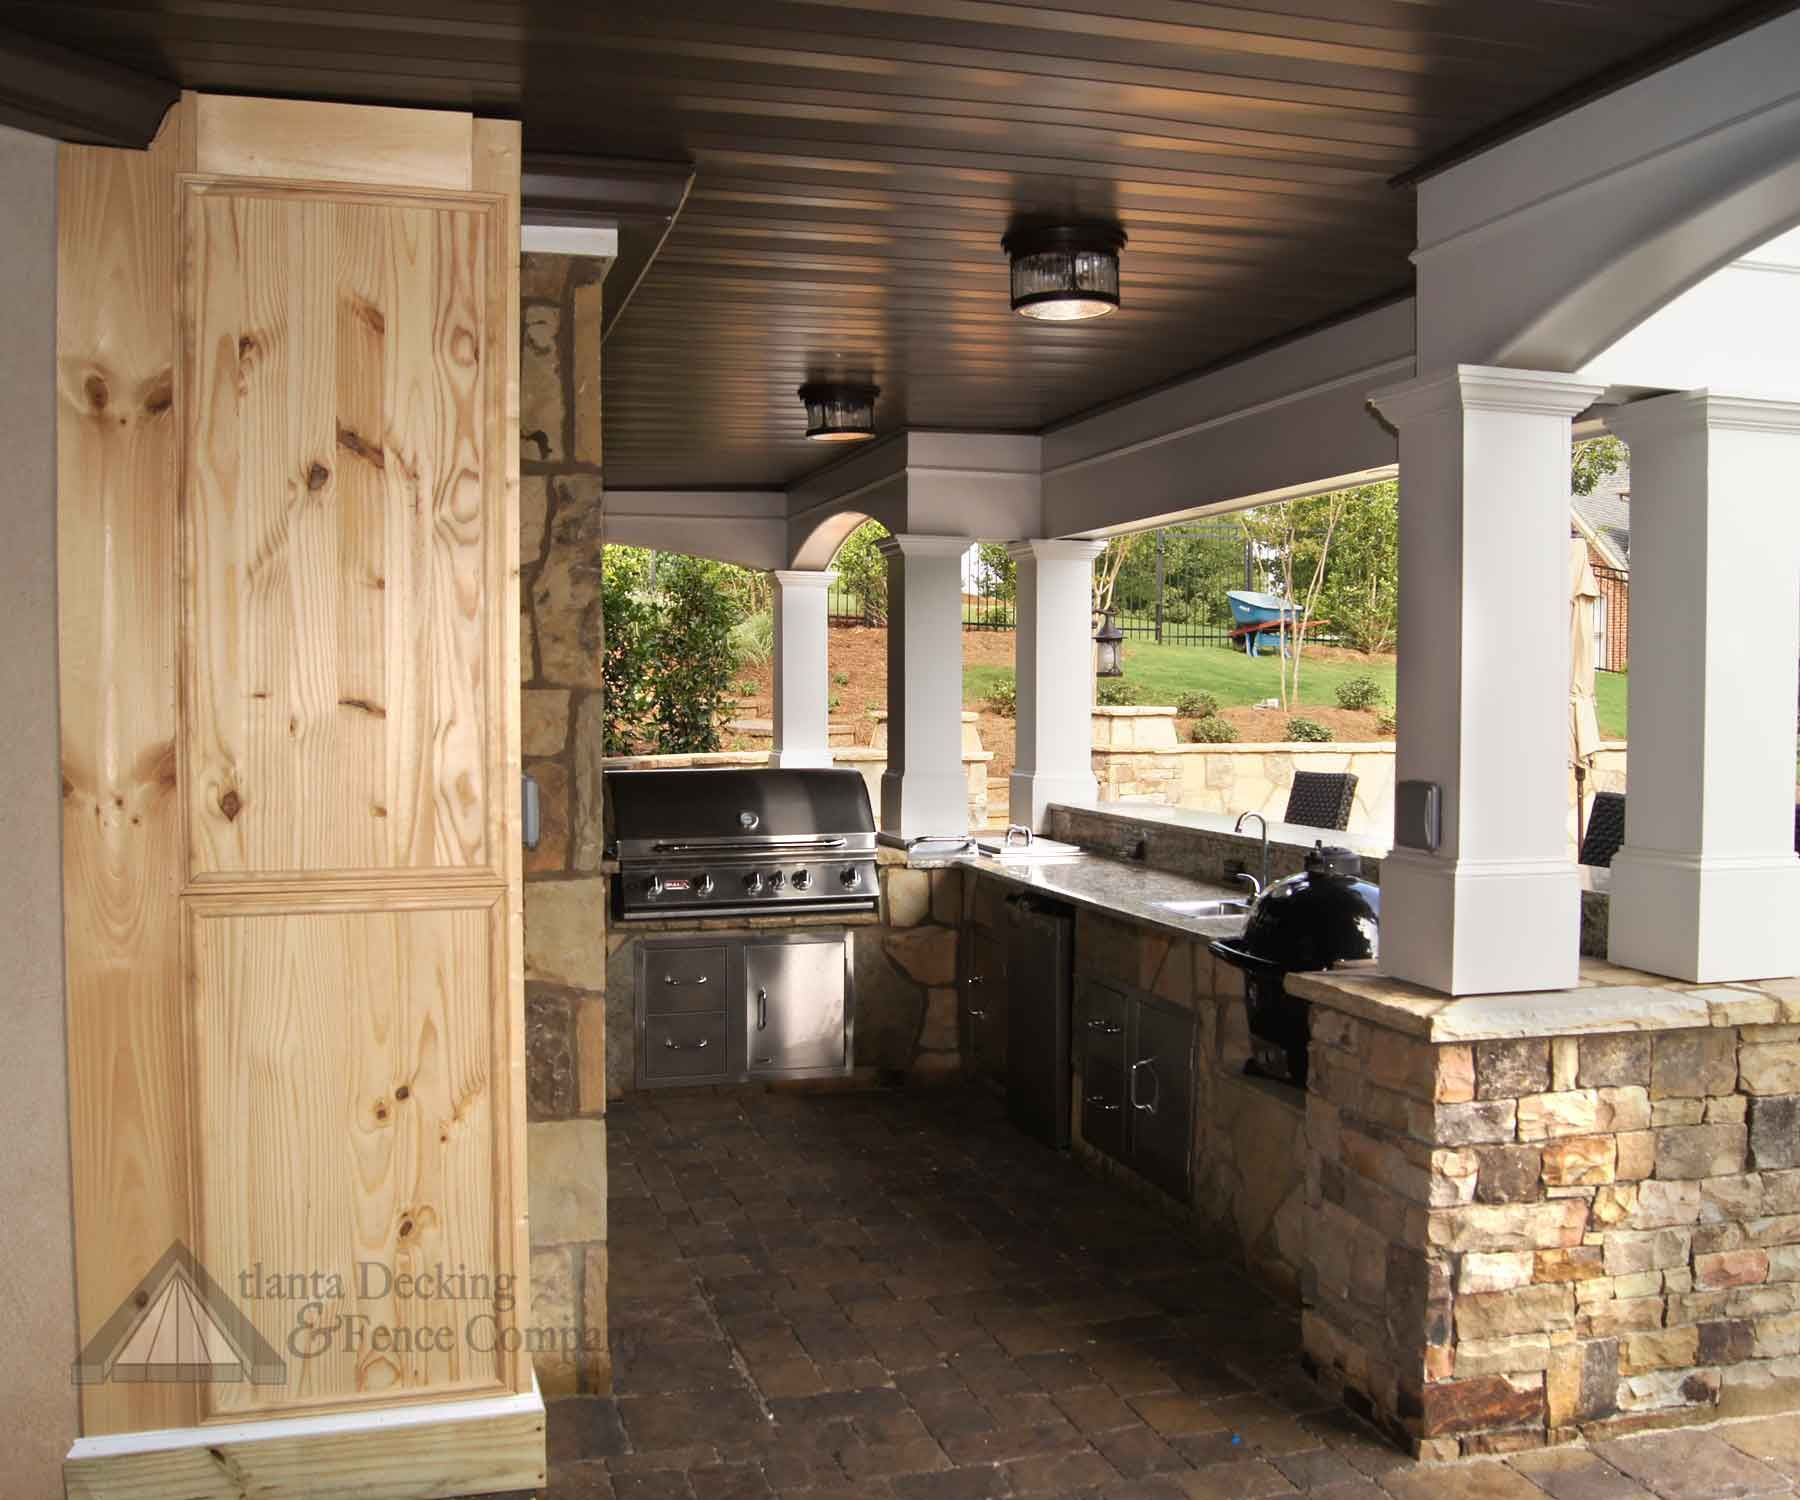 Outdoor Kitchen Wood Countertops: Outdoor Kitchen Under A Small Deck